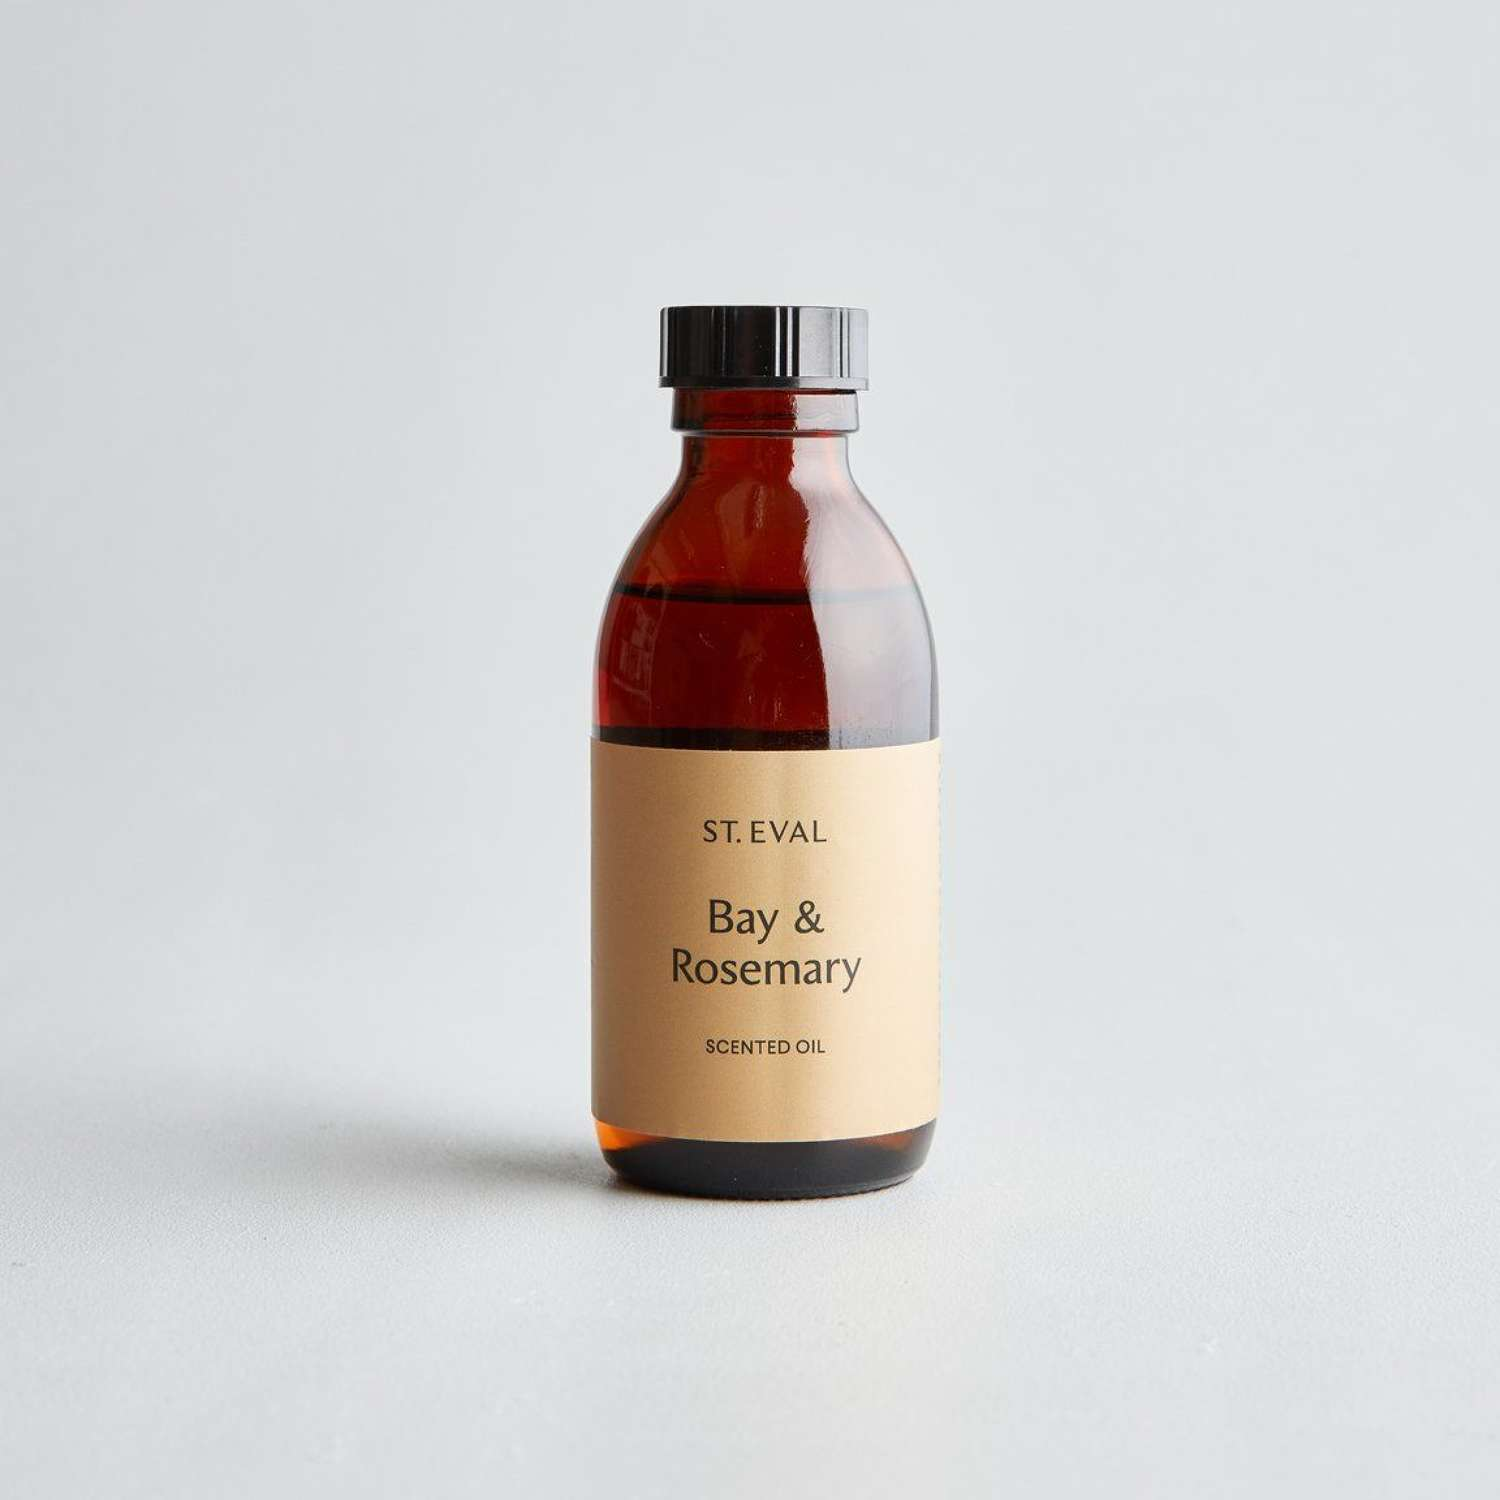 Bay & Rosemary diffuser refill (reeds sold separately)